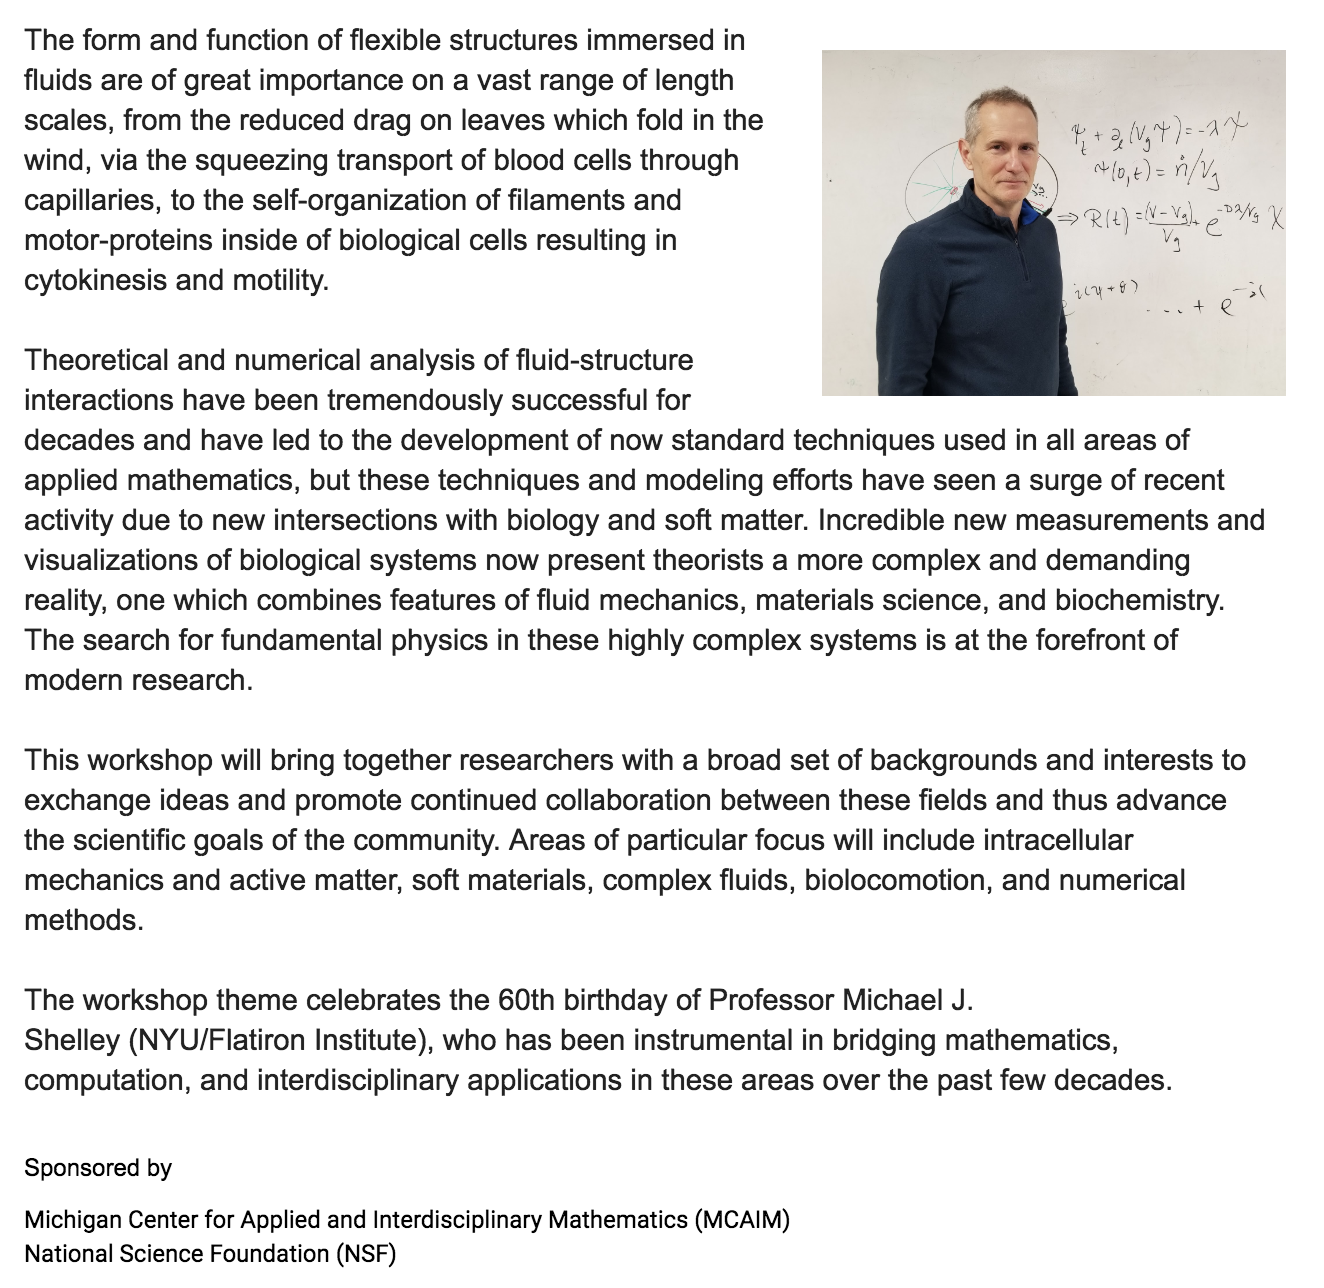 Mathematical Fluids, Materials and Biology (13-15 June 2019